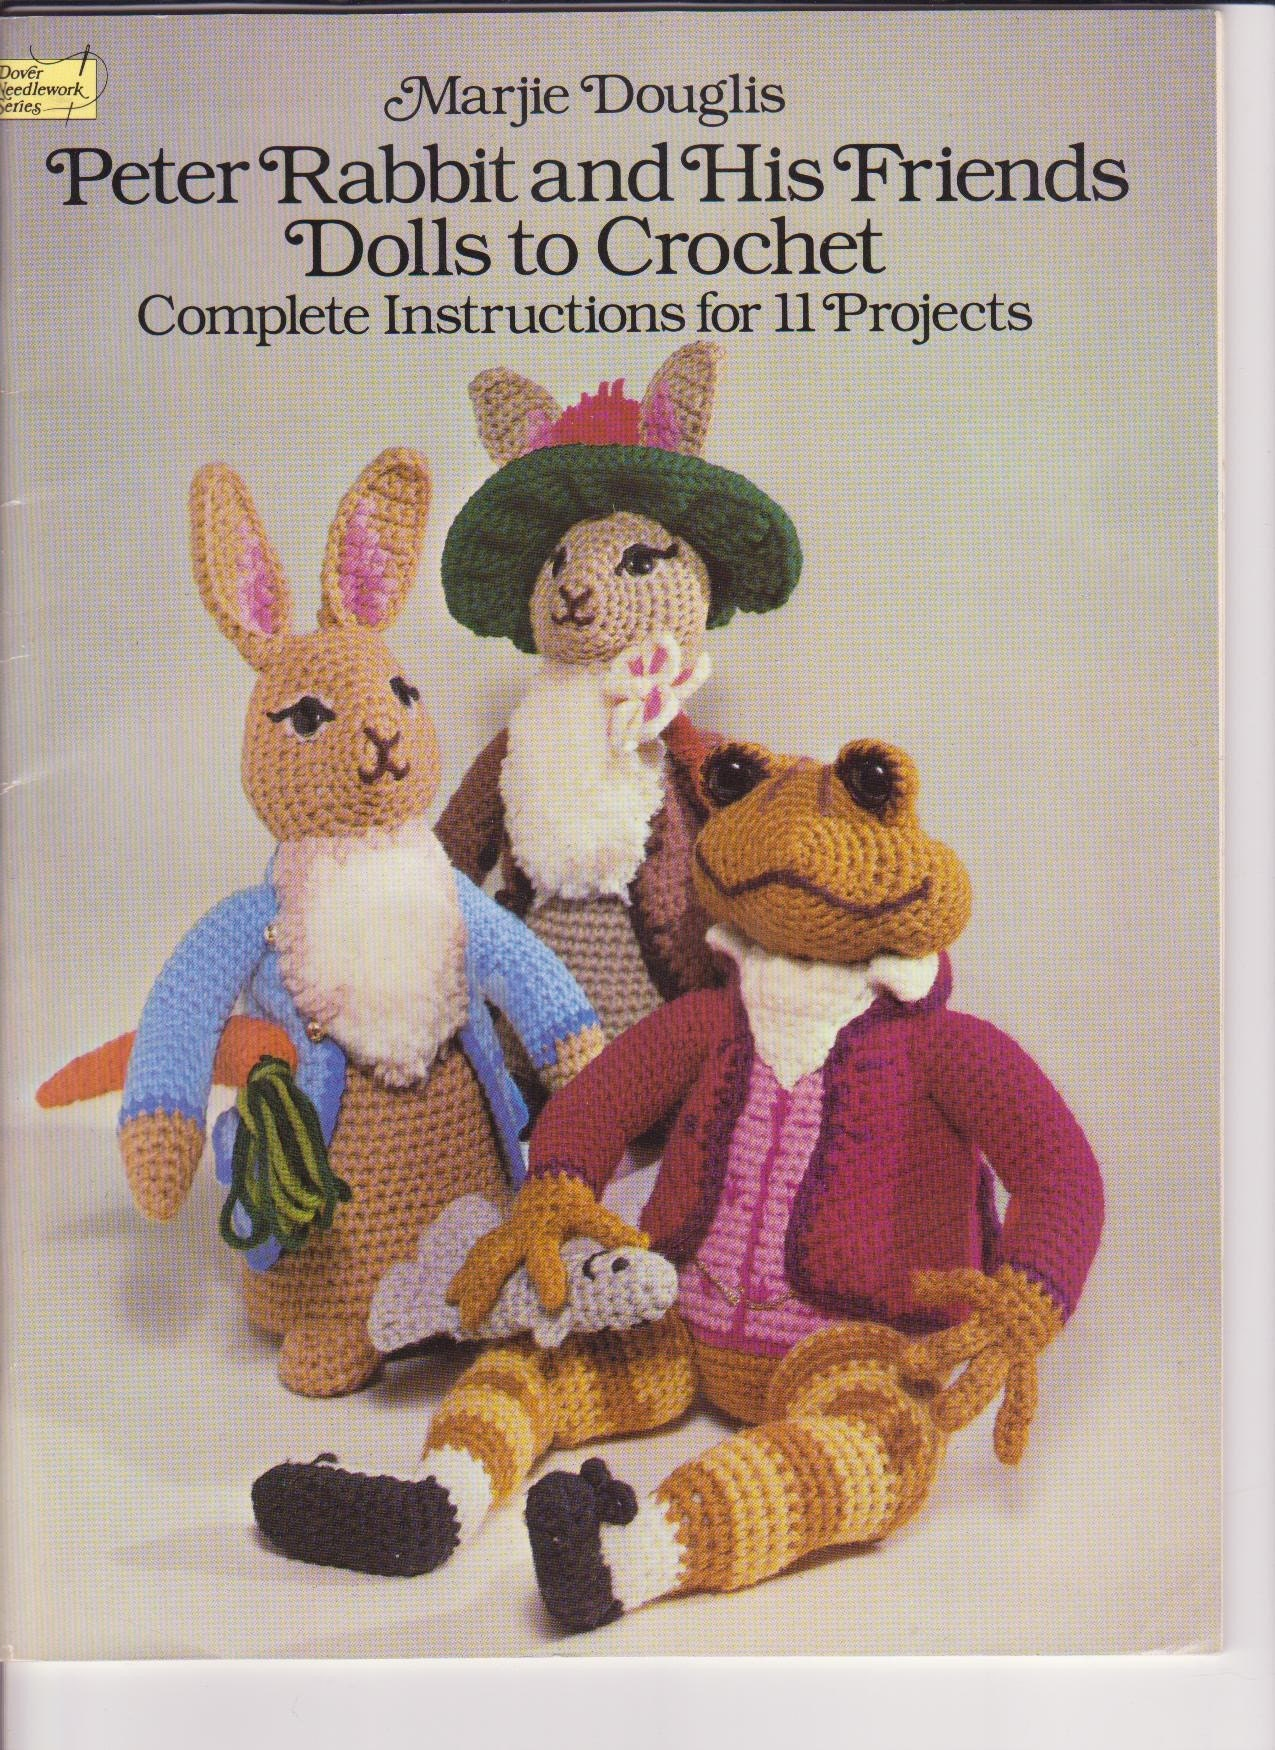 Peter Rabbit Knitting Patterns Free : Peter rabbit and friends dolls crochet pattern by aeriedesigns